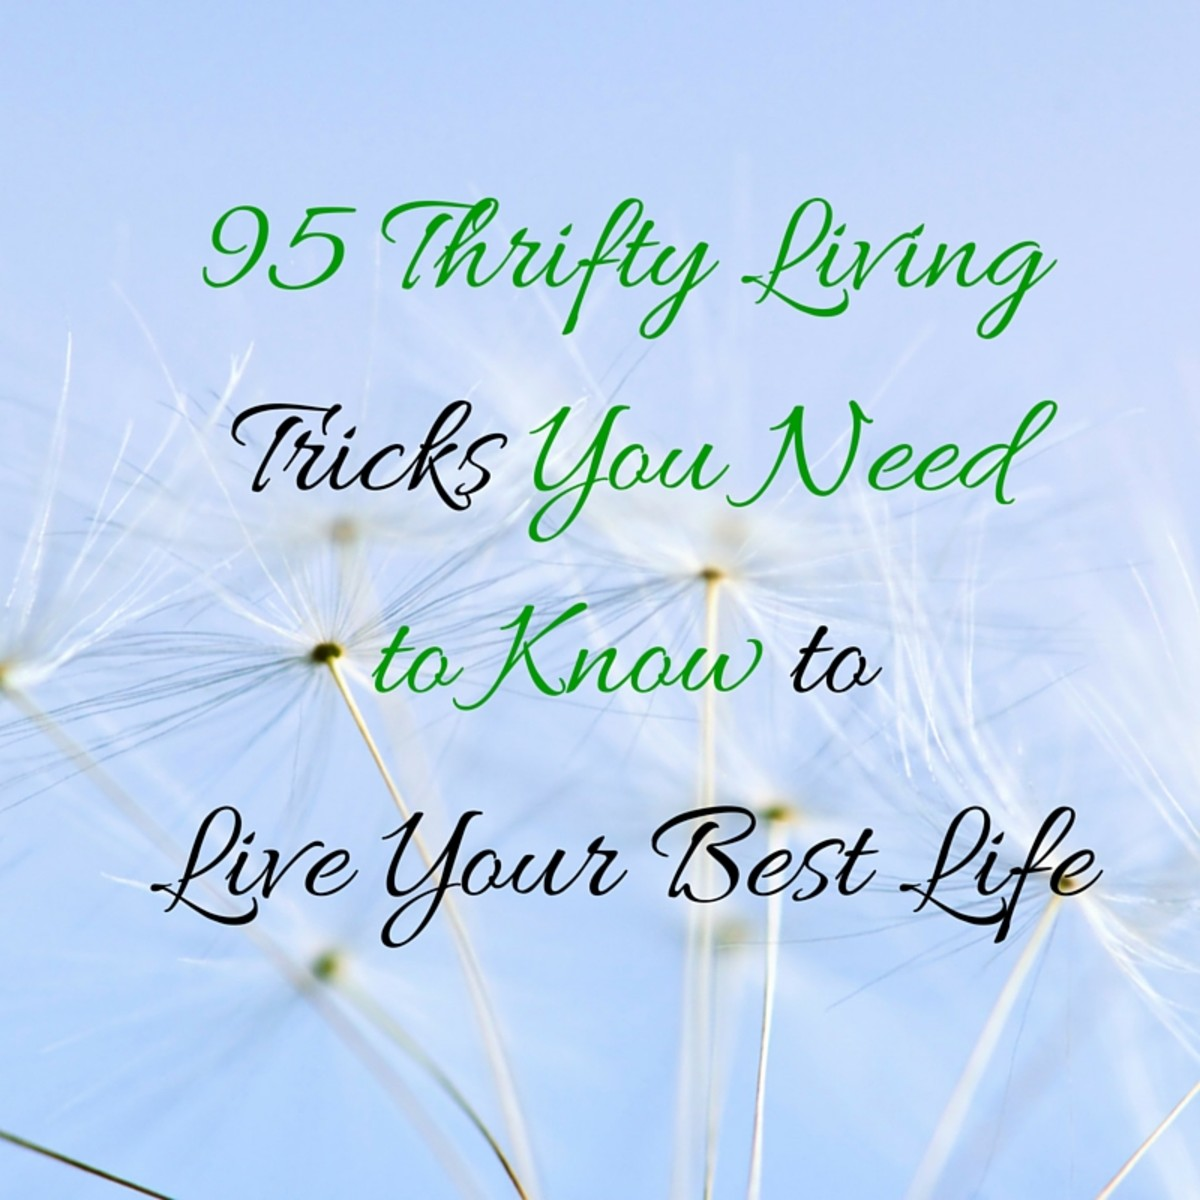 95 Thrifty Living Tricks You Need to Know